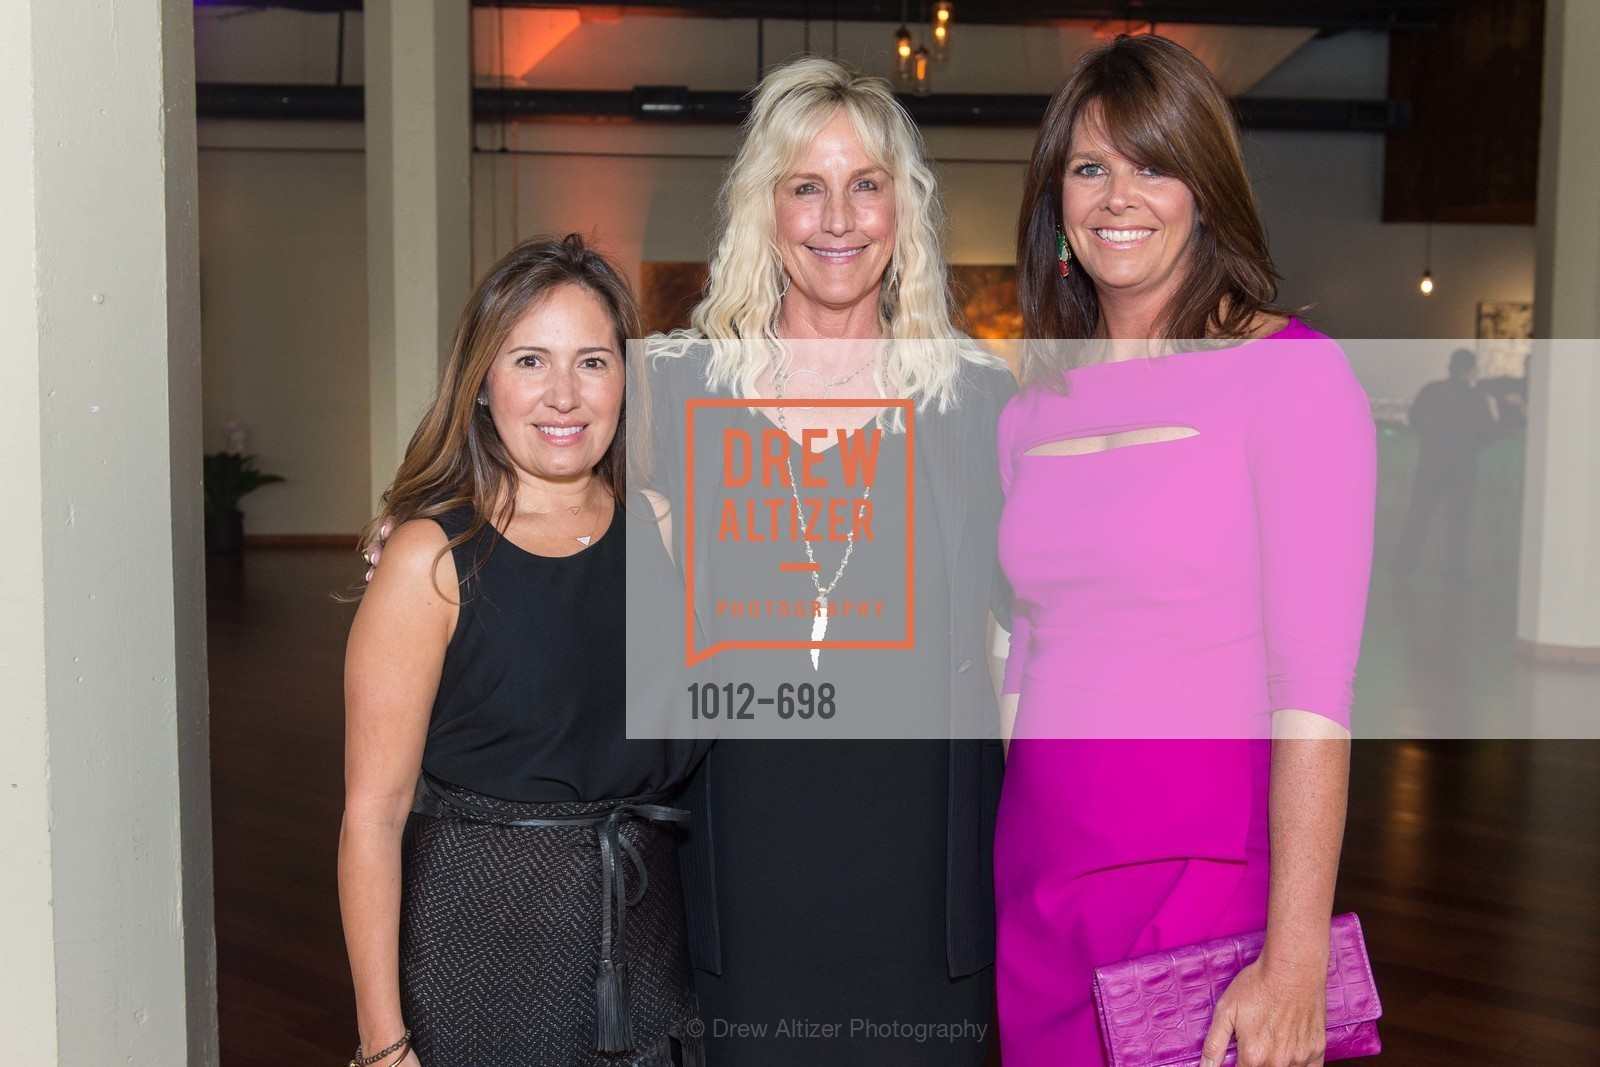 Ingrid Carney, Erin Brockovich, Christine Gardner, EWG's 6th Annual Earth Dinner, US, May 6th, 2015,Drew Altizer, Drew Altizer Photography, full-service agency, private events, San Francisco photographer, photographer california